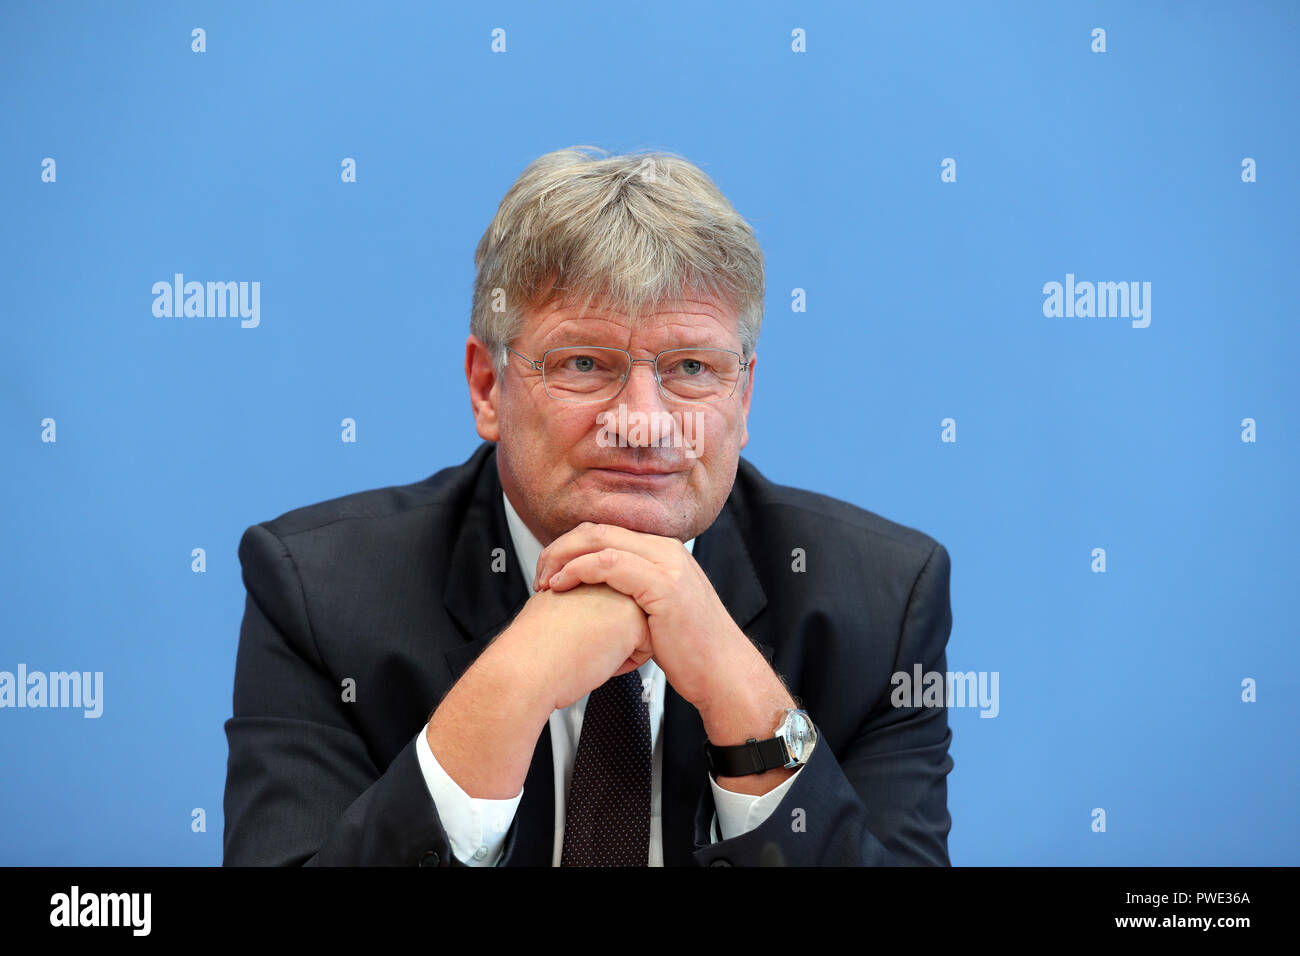 15 October 2018, Berlin: 15 October 2018, Germany, Berlin: Joerg Meuthen, party chairman of the AfD, answers questions on the results of the state elections in Bavaria on the podium of the federal press conference. Photo: Jens Büttner/dpa-Zentralbild/dpa - Stock Image